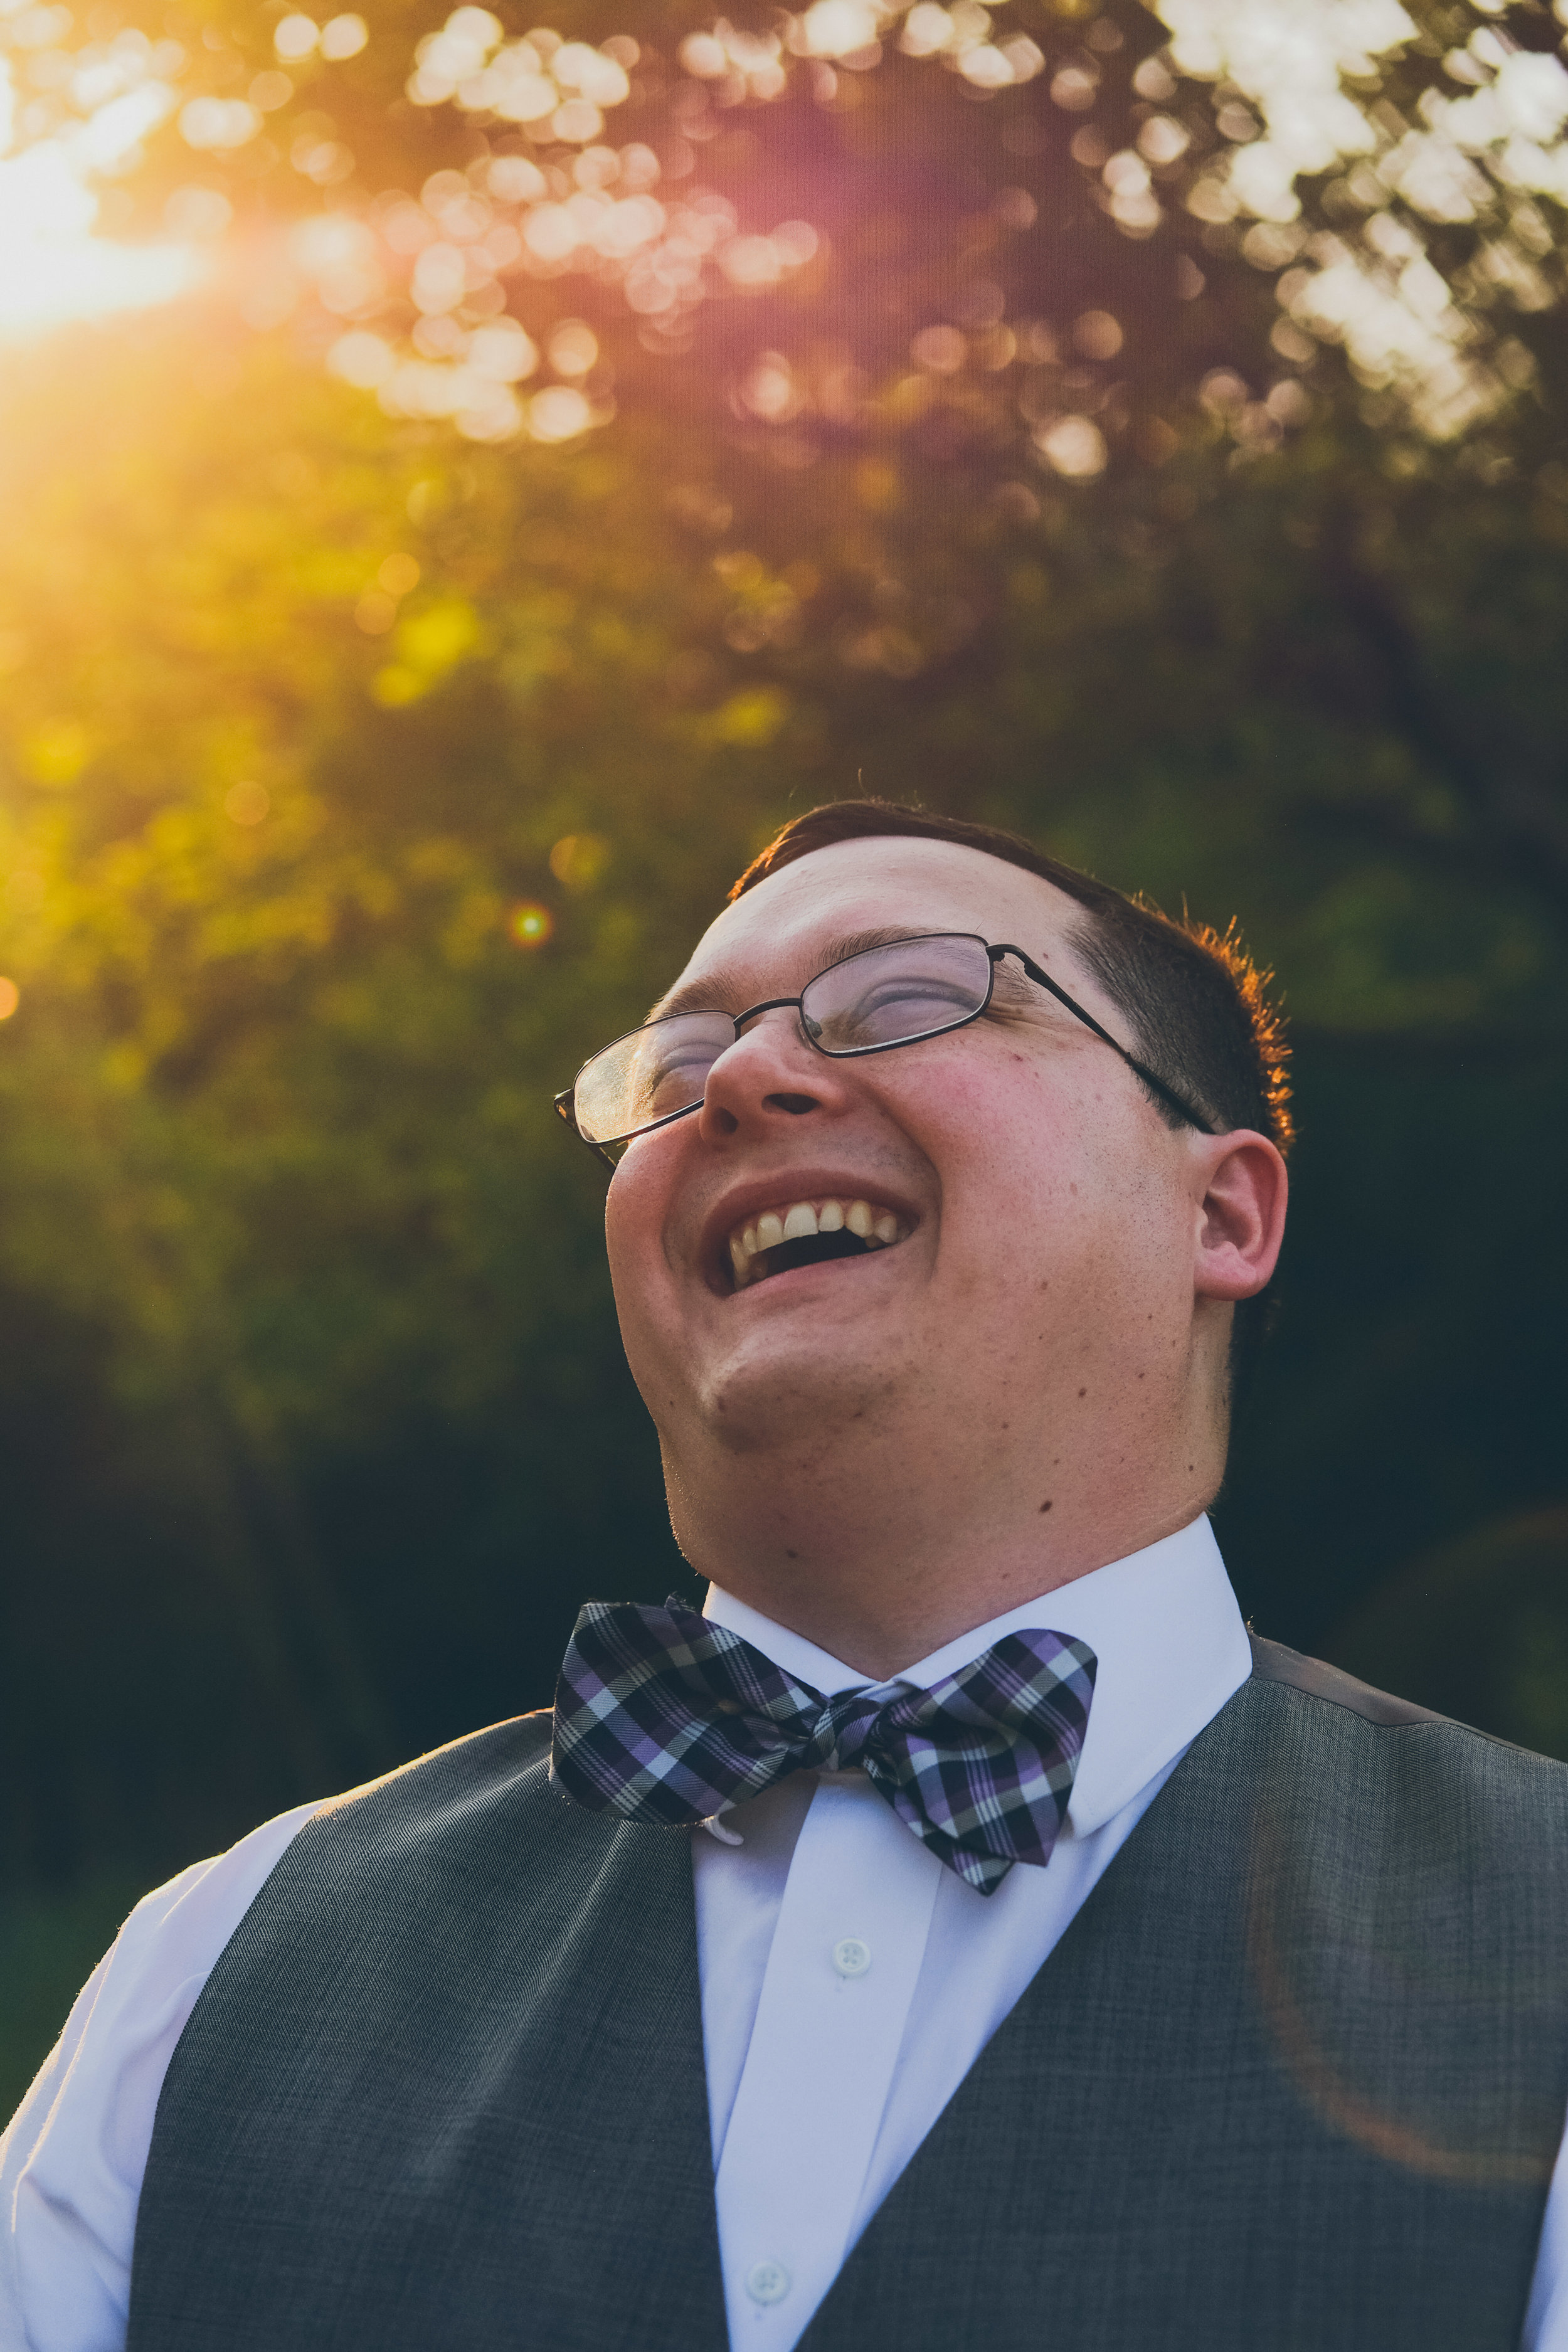 Groom laughing and wearing bowtie with sun over shoulder